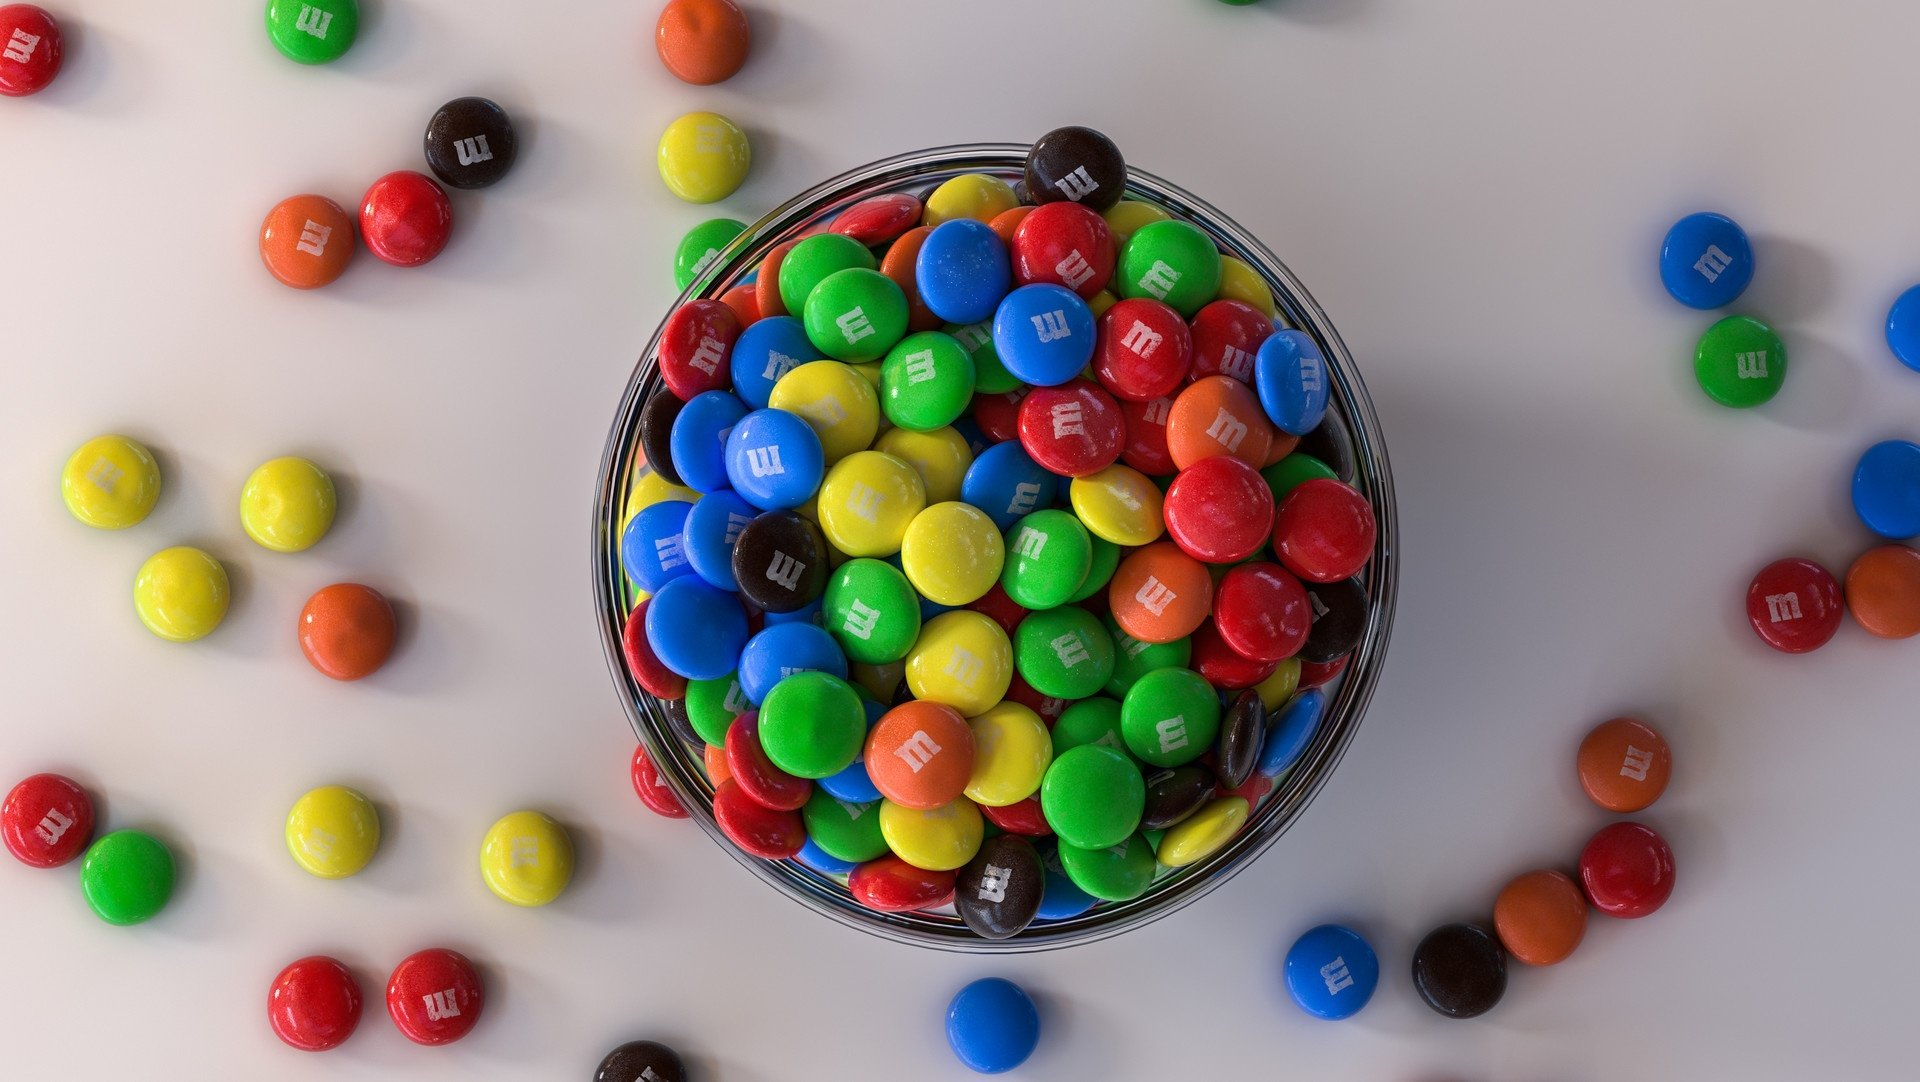 M&m's HD Wallpaper | Background Image